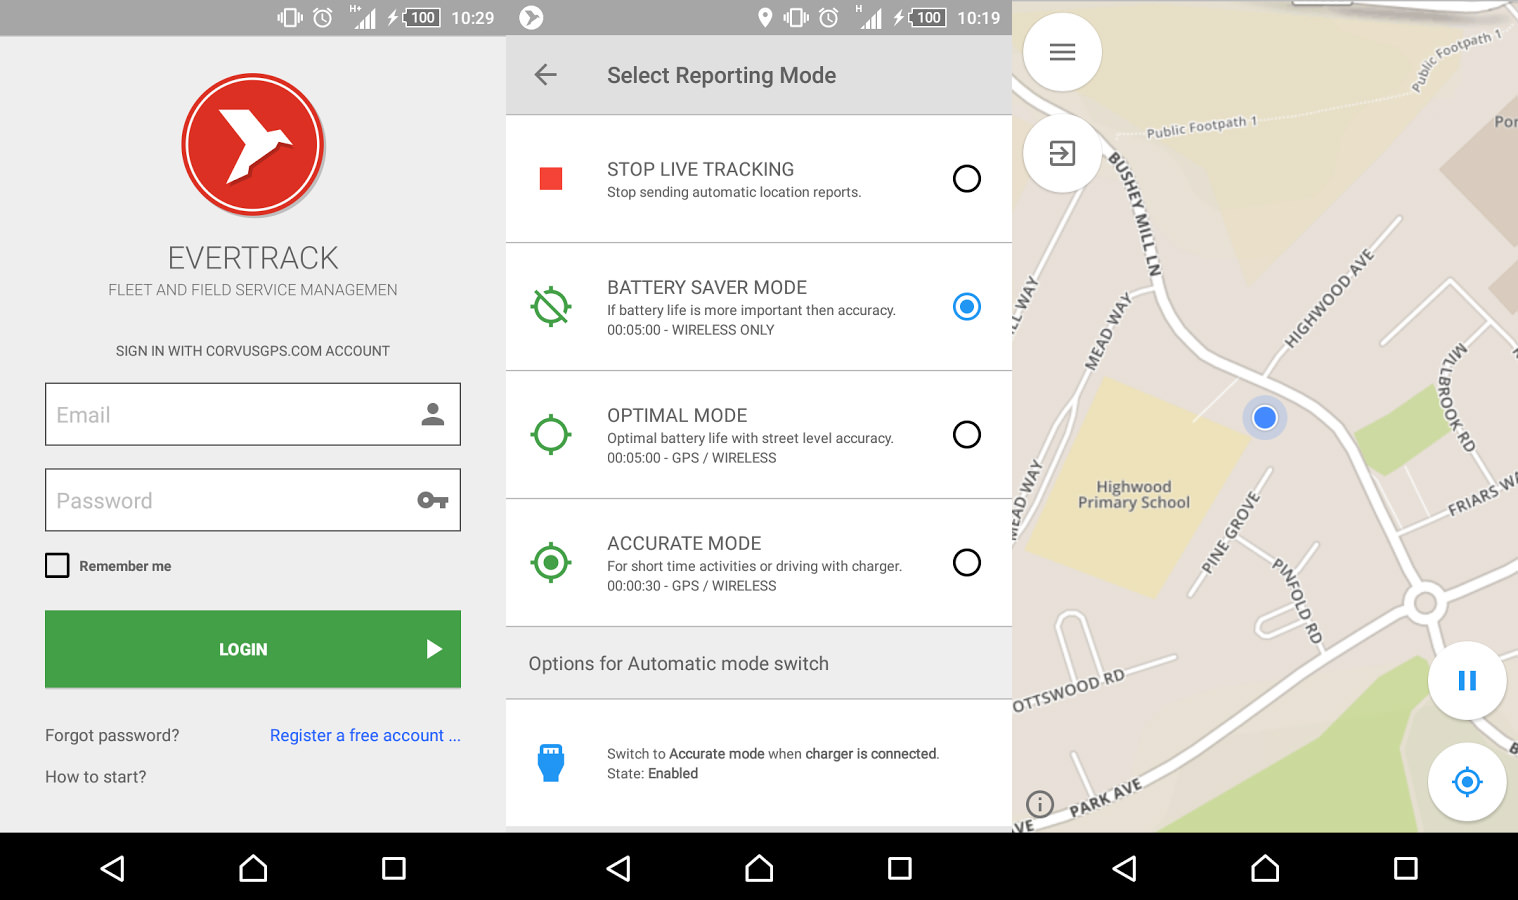 Gps Tracking System In Android - 5 Best GPS Car Tracking